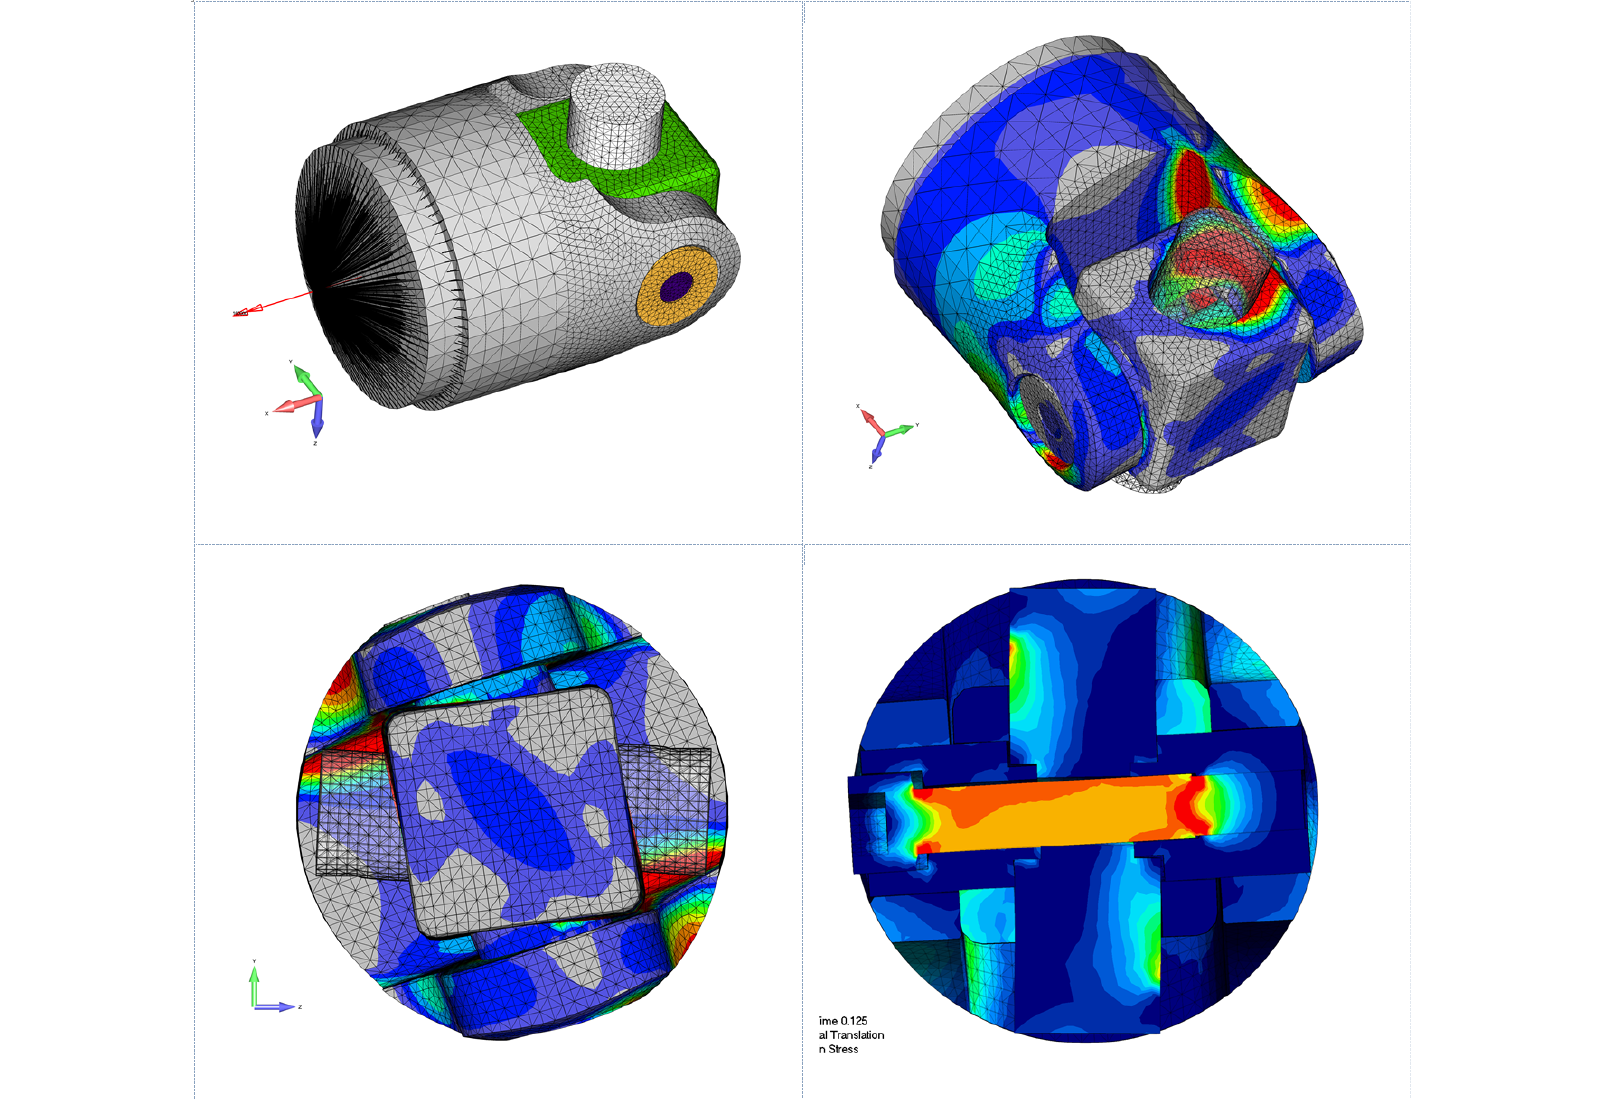 Figure 1: Stress and fatigue analysis of a high-strength U-joint for steel mill leveling table.  The U-joint was fabricated using tool steel and high-strength steel.  The Femap model was analyzed with all surfaces contacting and allowing for material plasticity using NX Nastran SOL 601 (ADINA) and LS-DYNA.